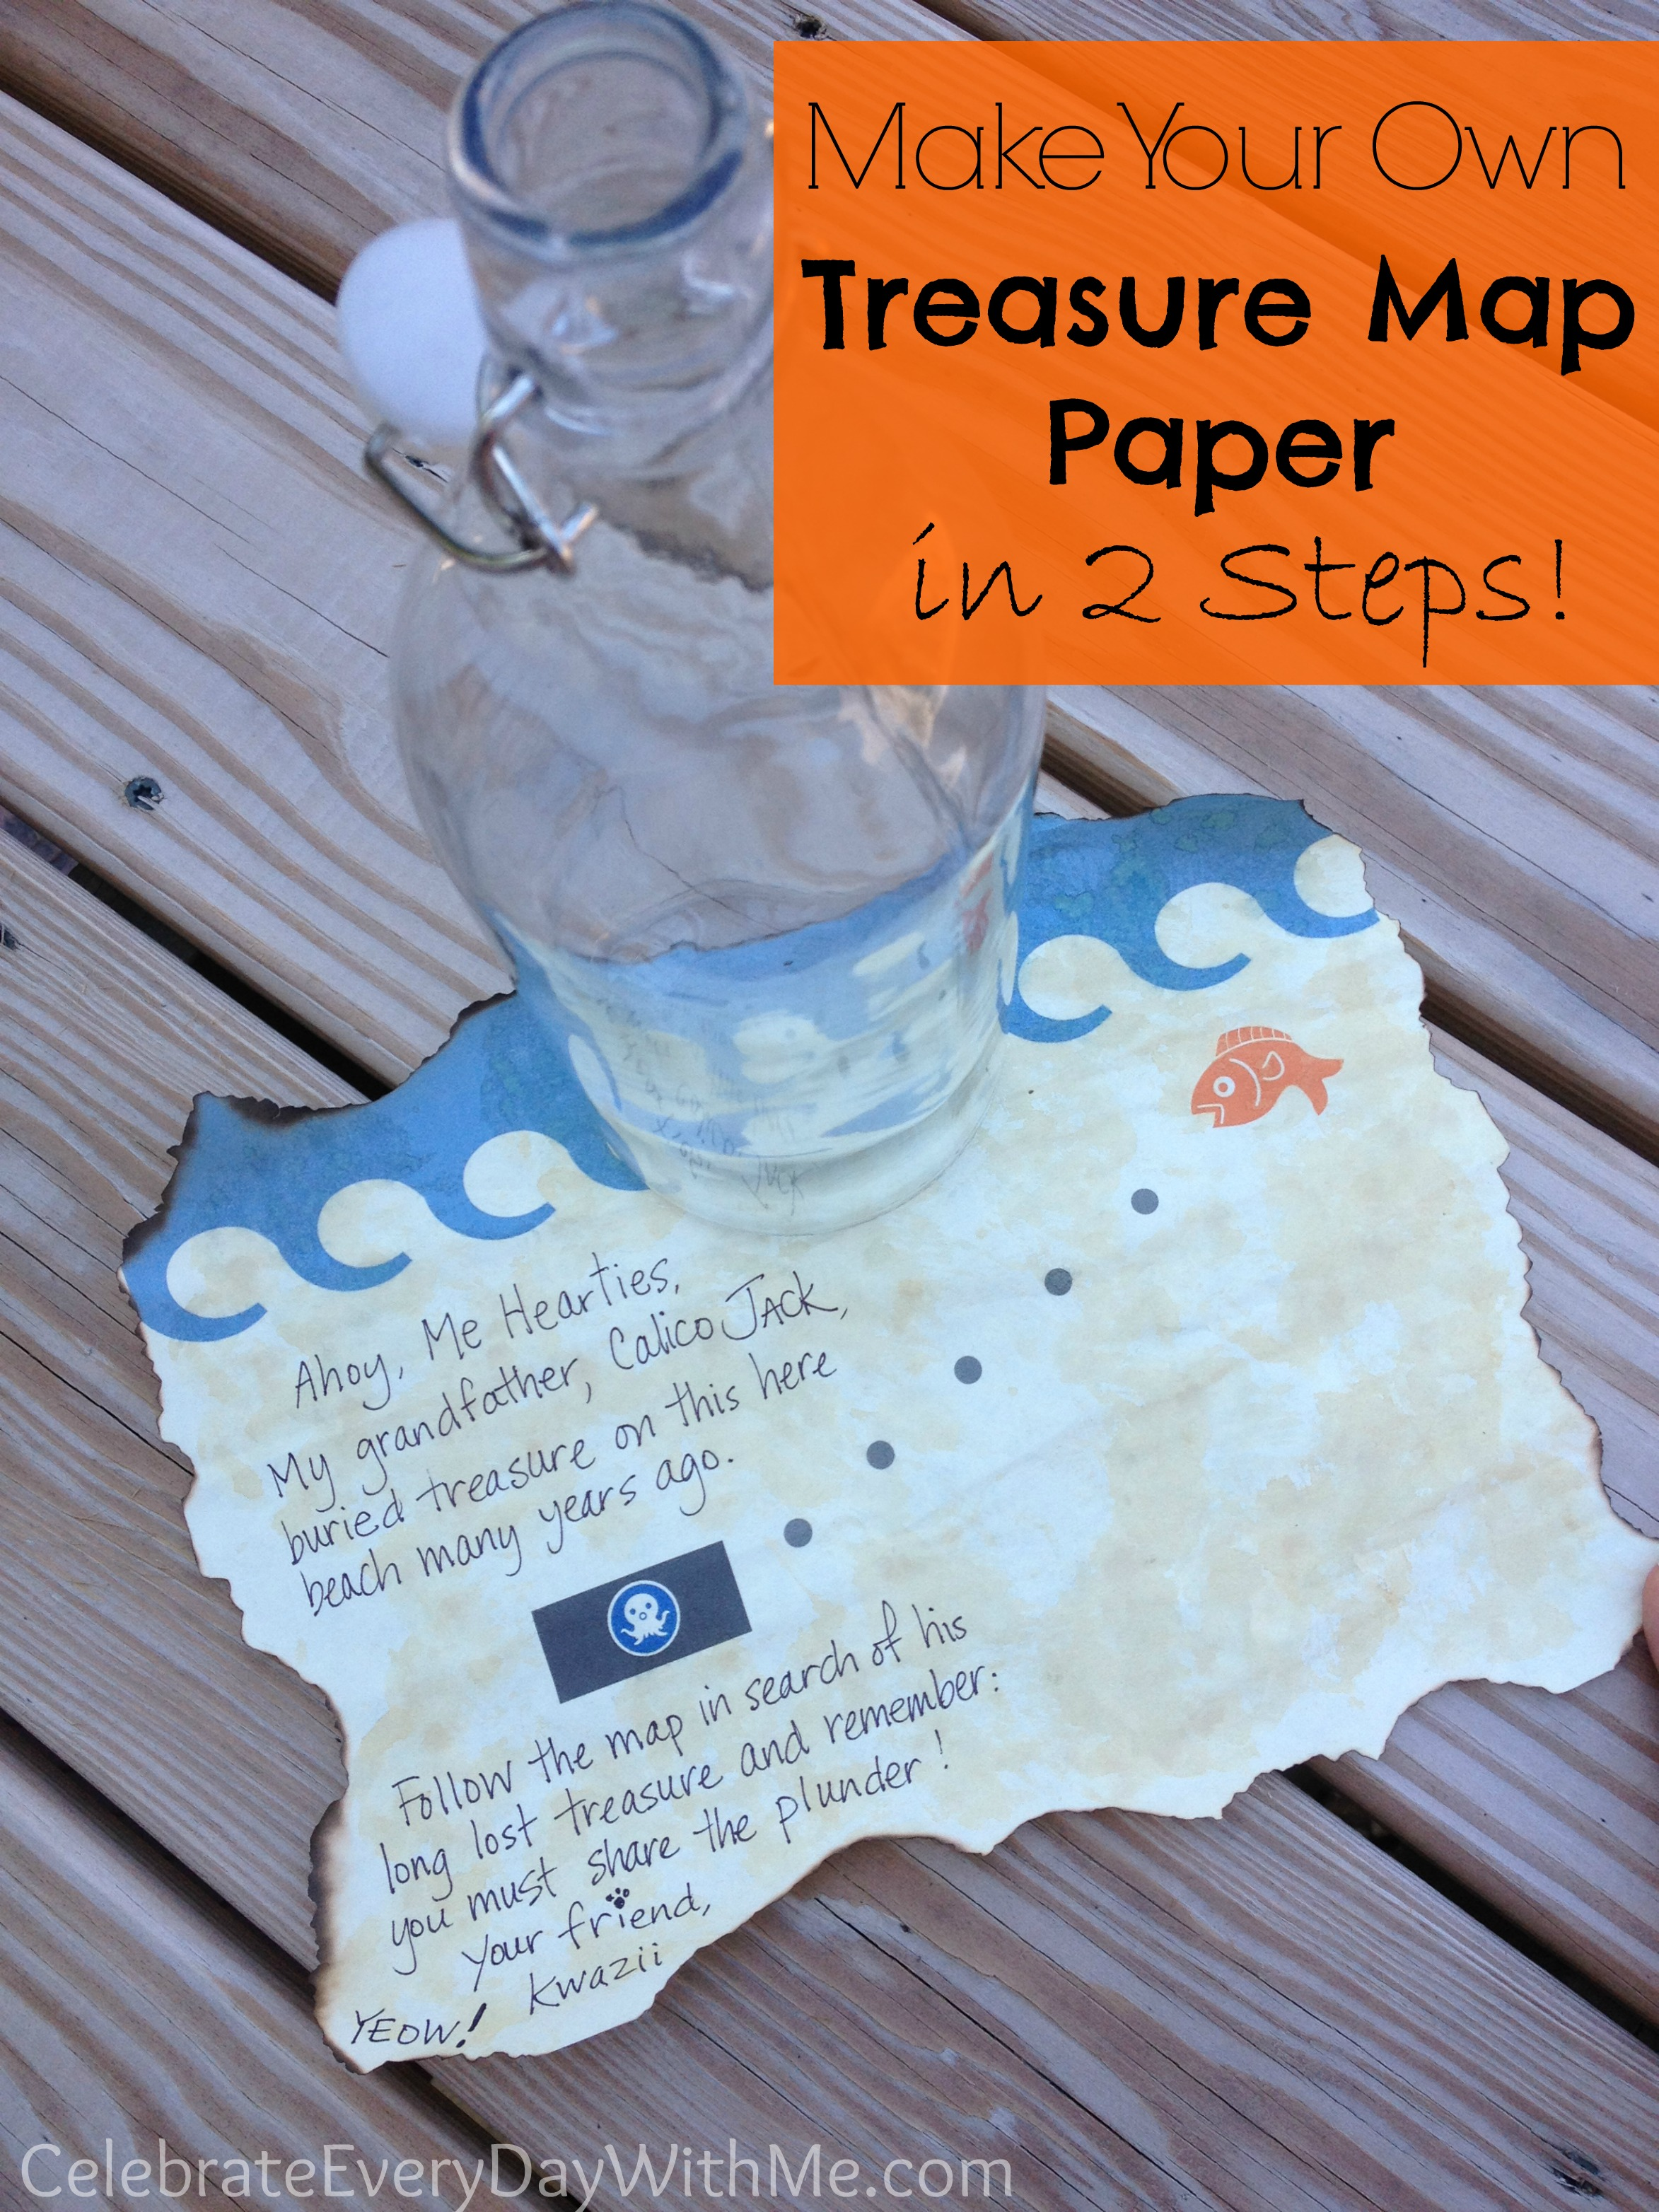 How To Make Treasure Map Paper In 2 Steps